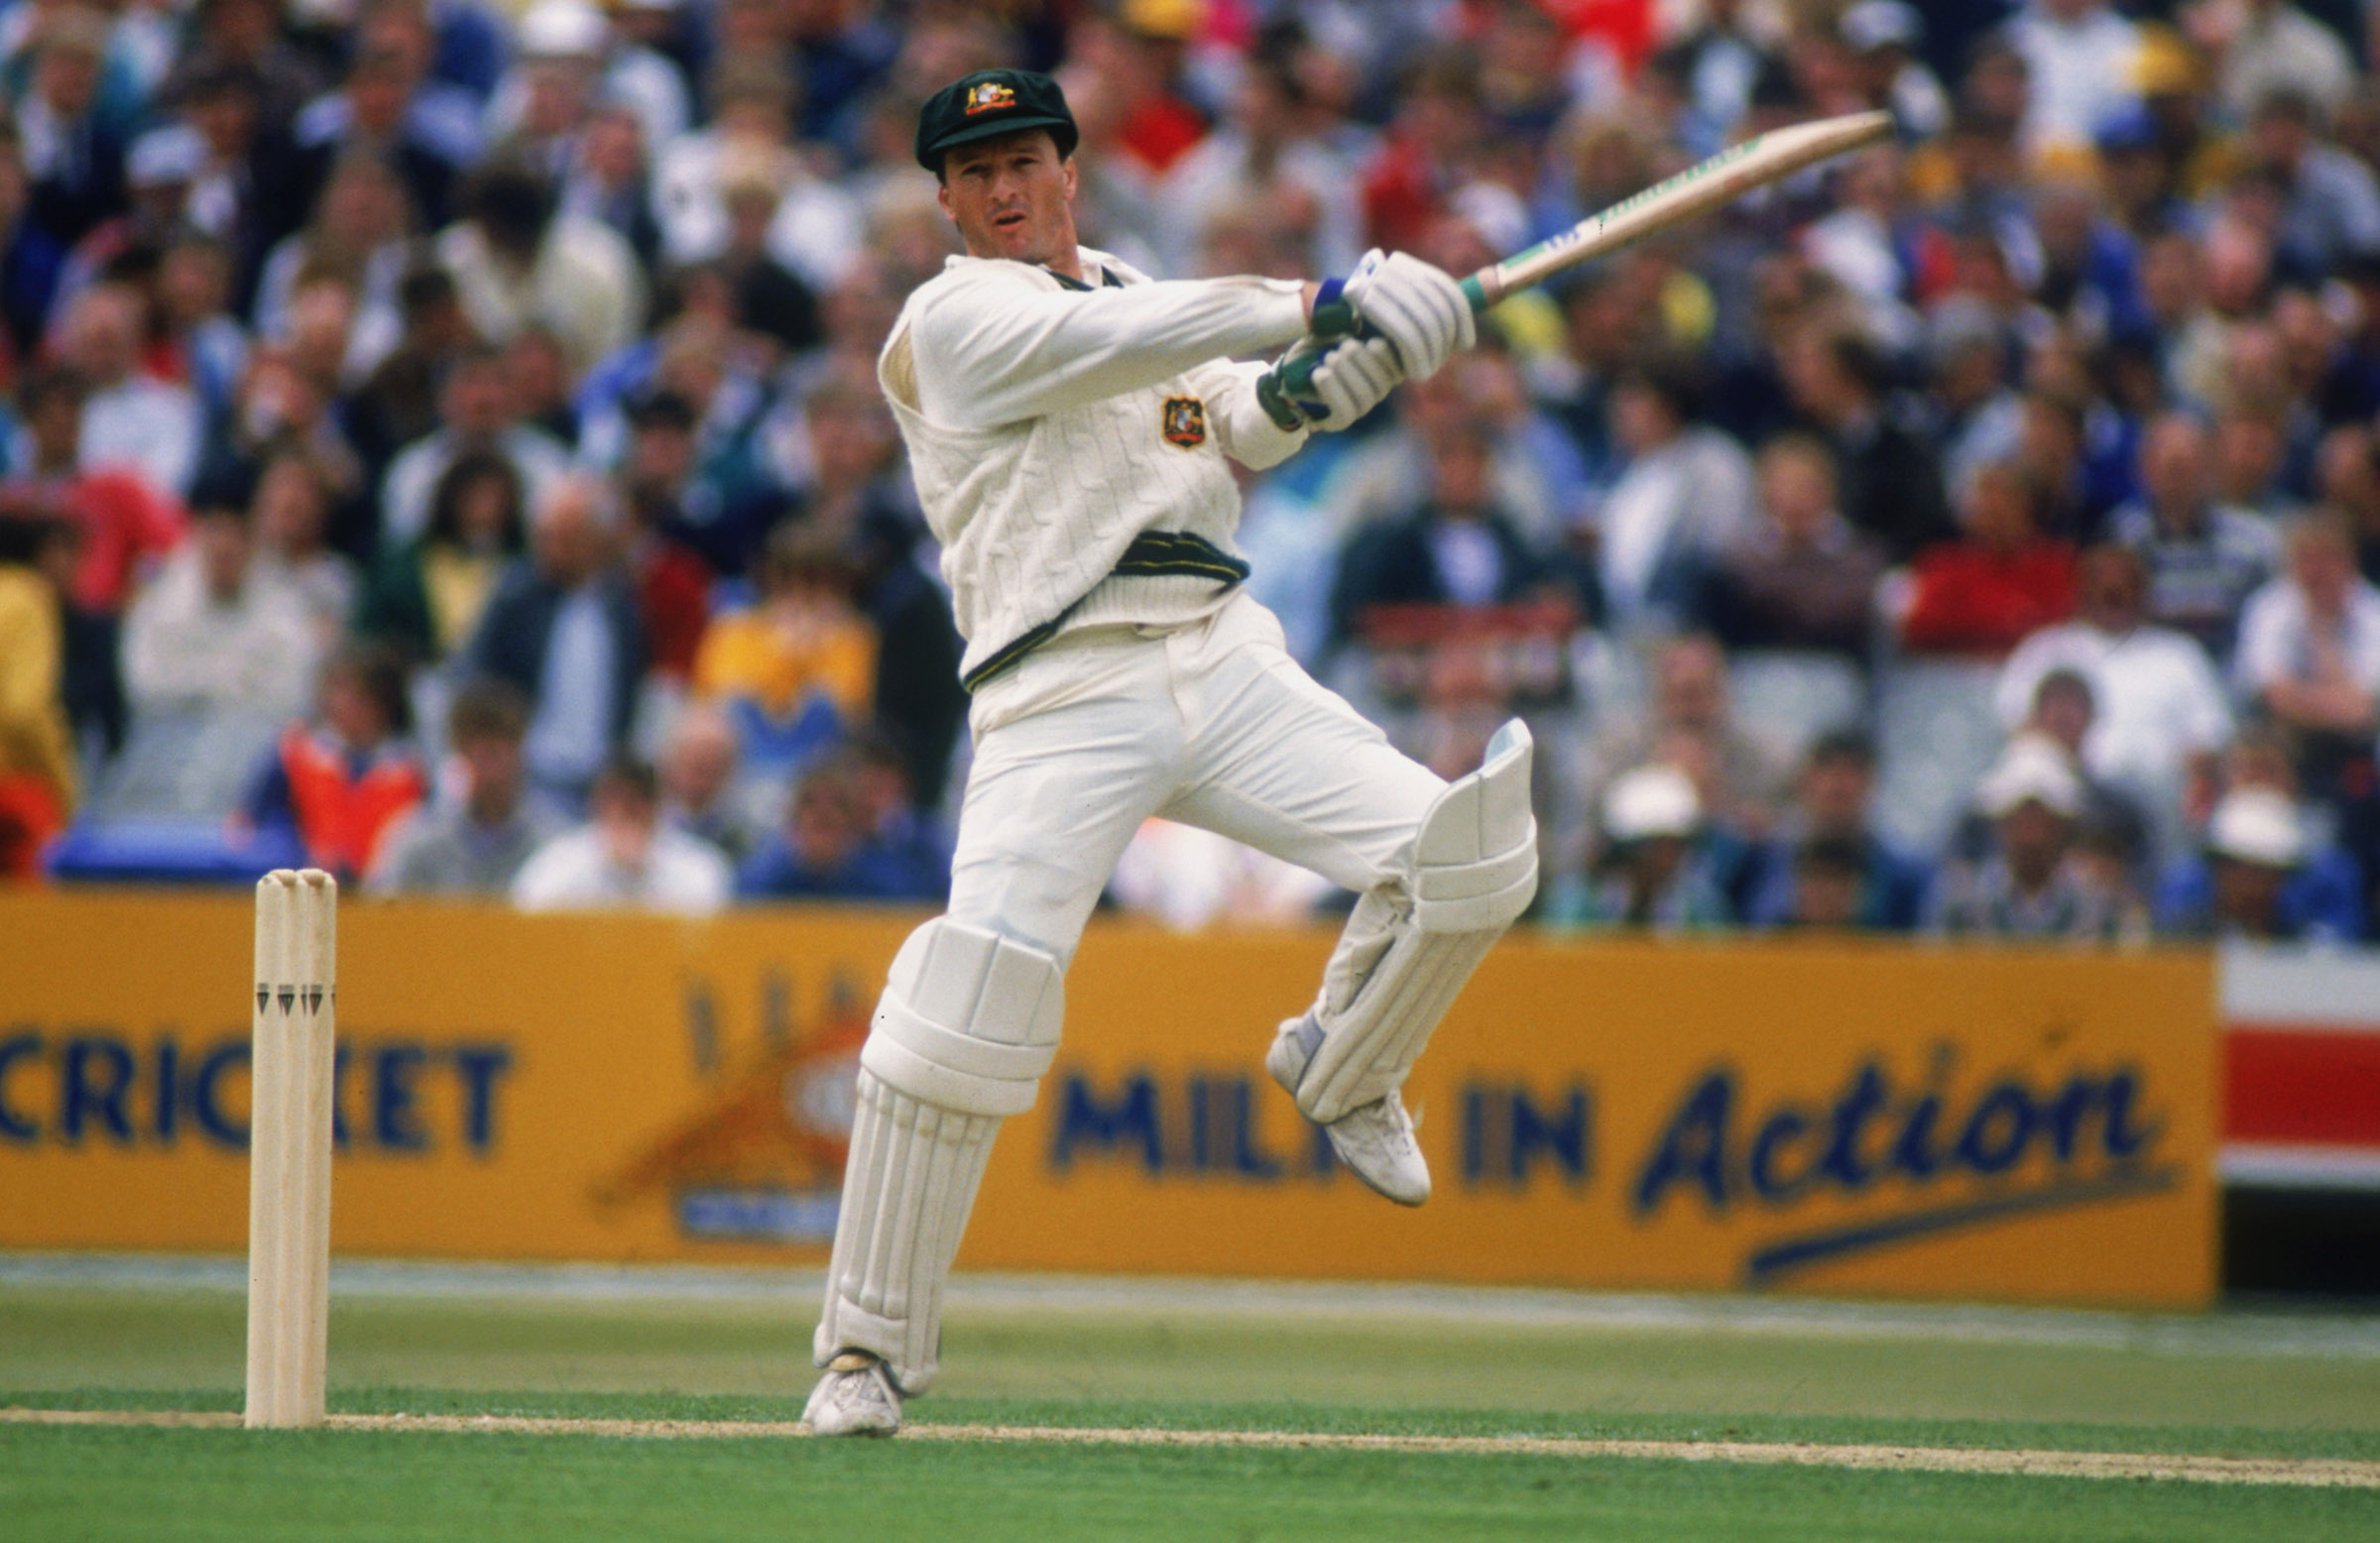 Steve Waugh hits out during his 177no innings in Headingley, Leeds // Getty